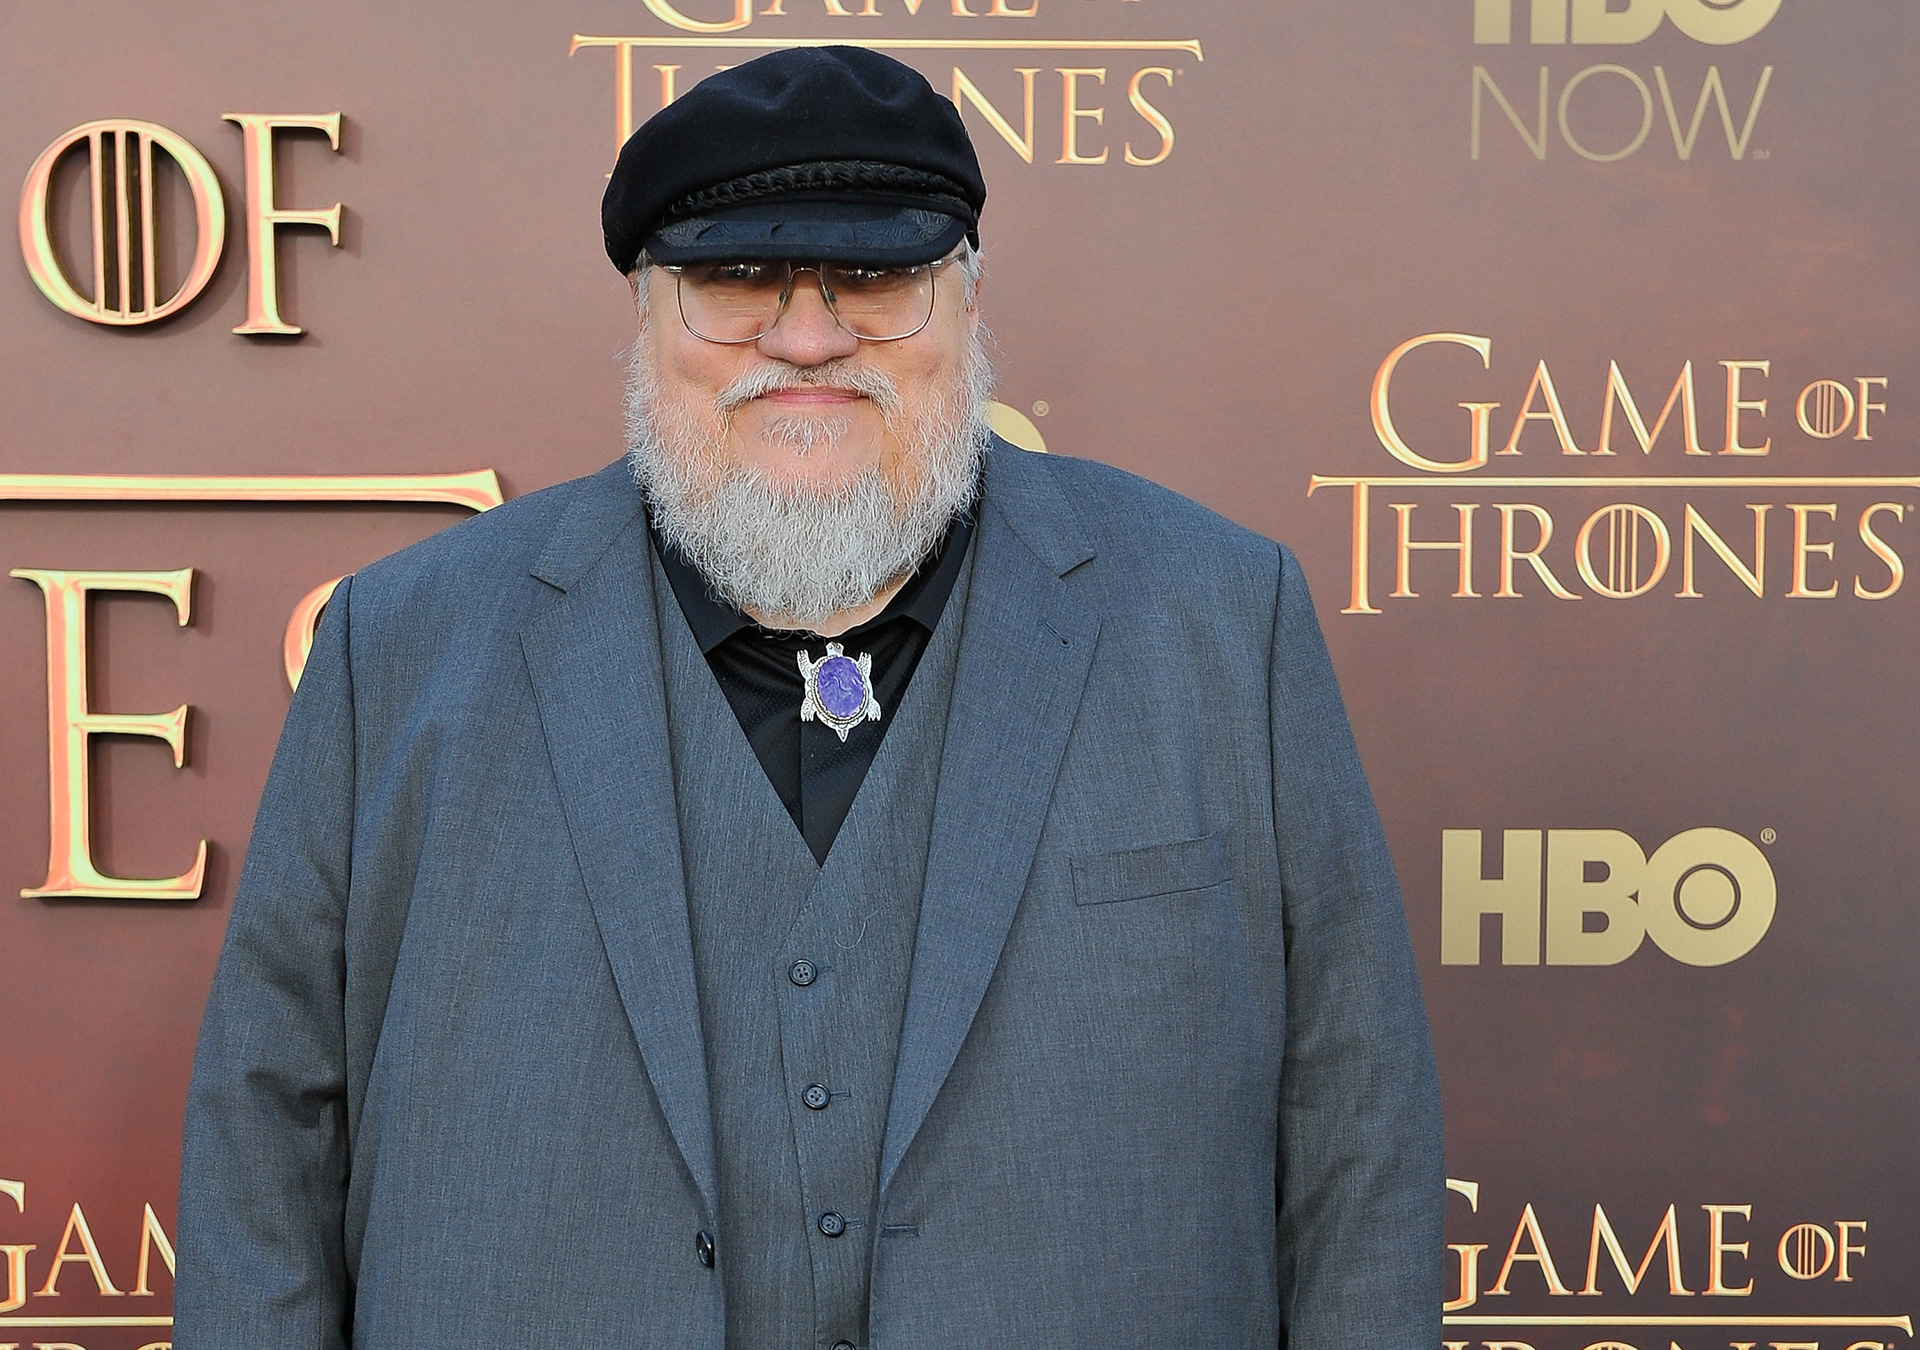 George R.R. Martin - Game of Thrones season 5 premiere